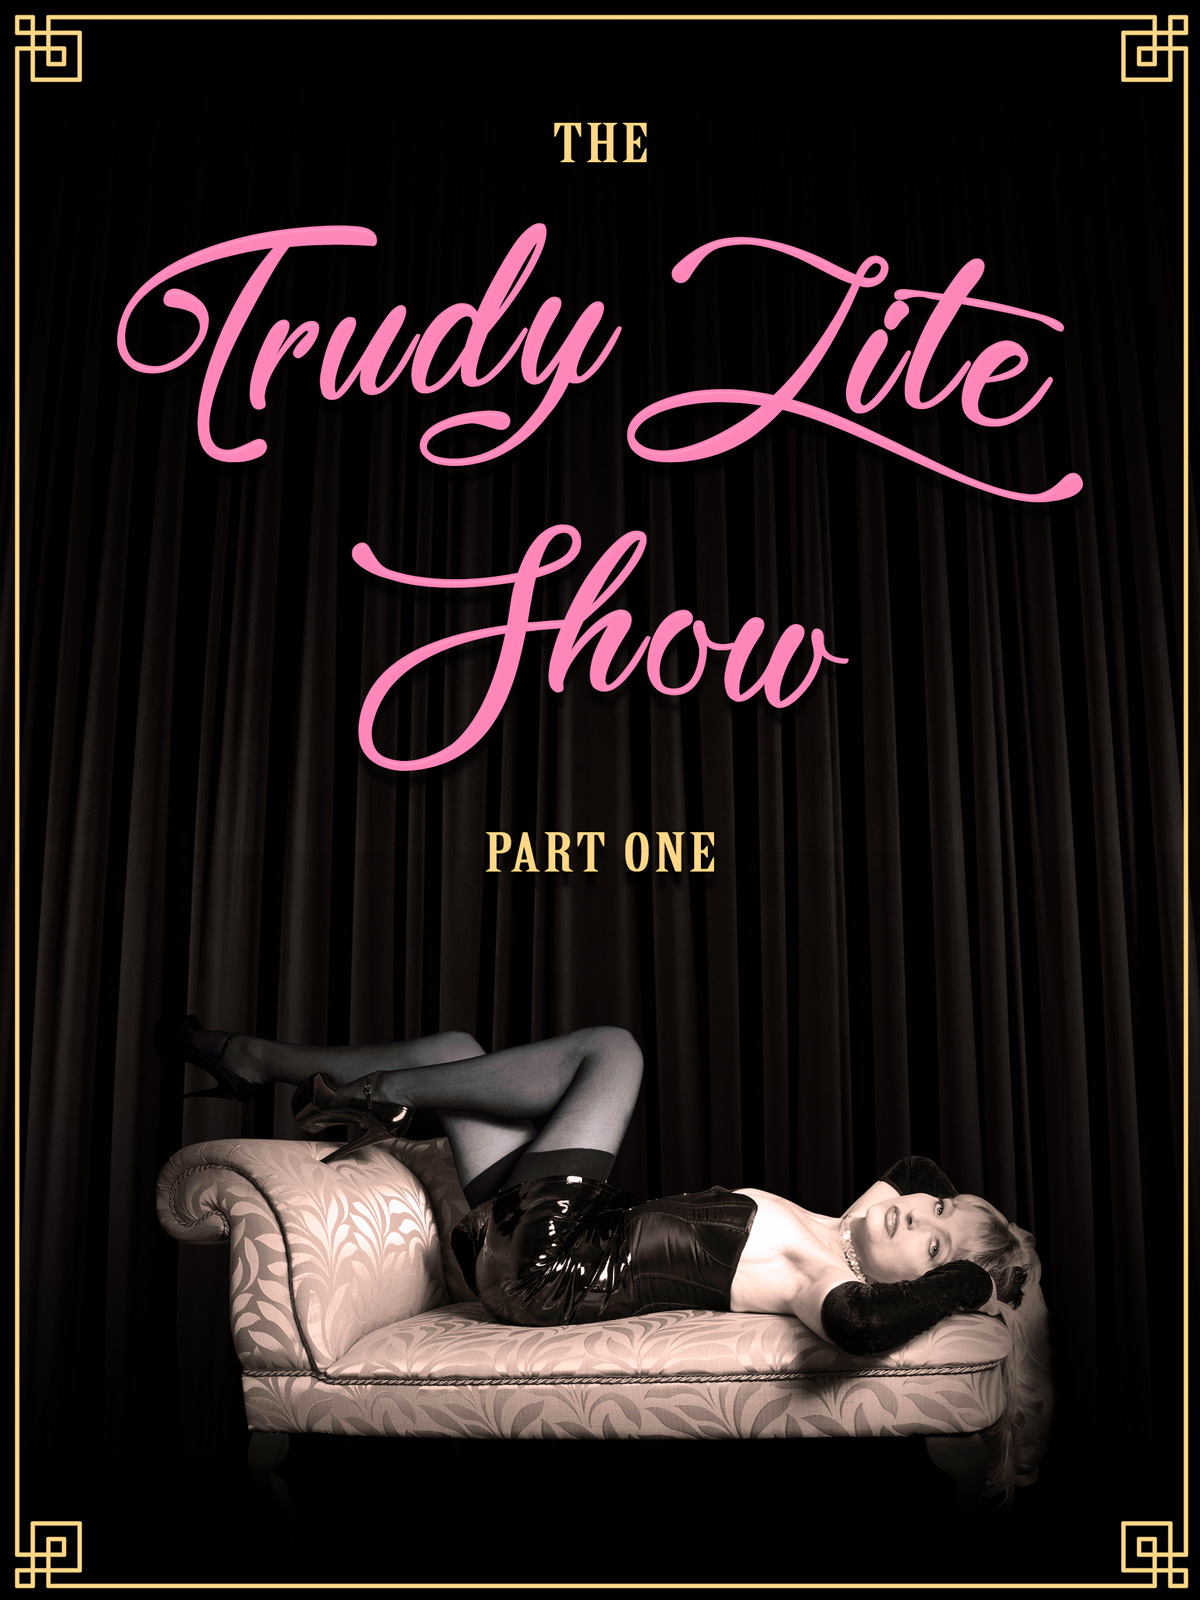 TRUDY LITE SHOW 1200X1600 ARTWORK